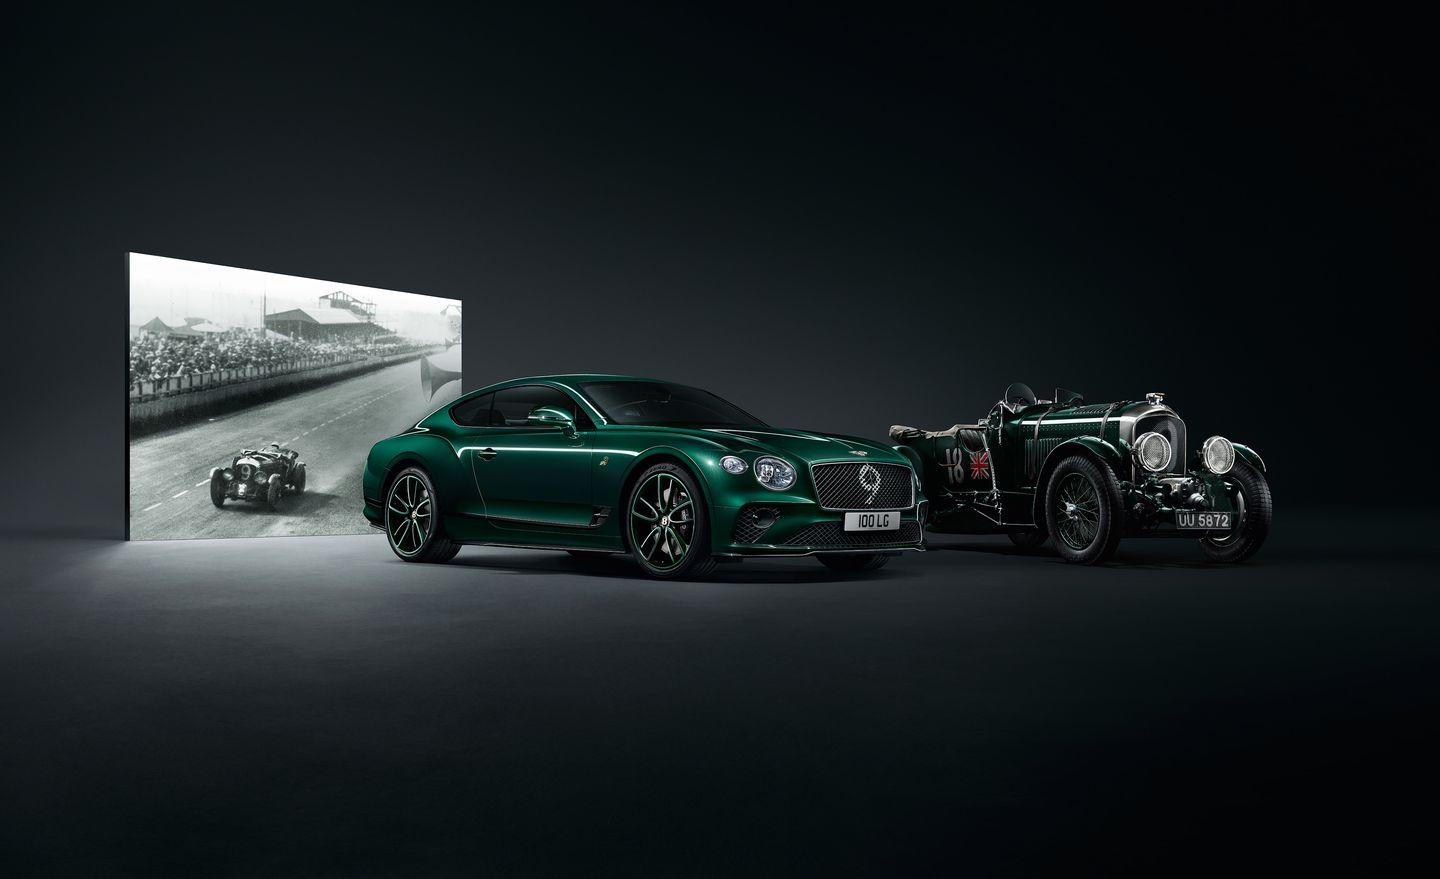 <p>Available in either Viridian Green or Beluga Black, the Number 9 special features specific No. 9 badgework and a matching graphic on the front grille. Rolling stock is provided by color-matched 21-inch, 10-spoke wheels. Bentley's Blackline Specification and carbon body kit complete the picture.</p>